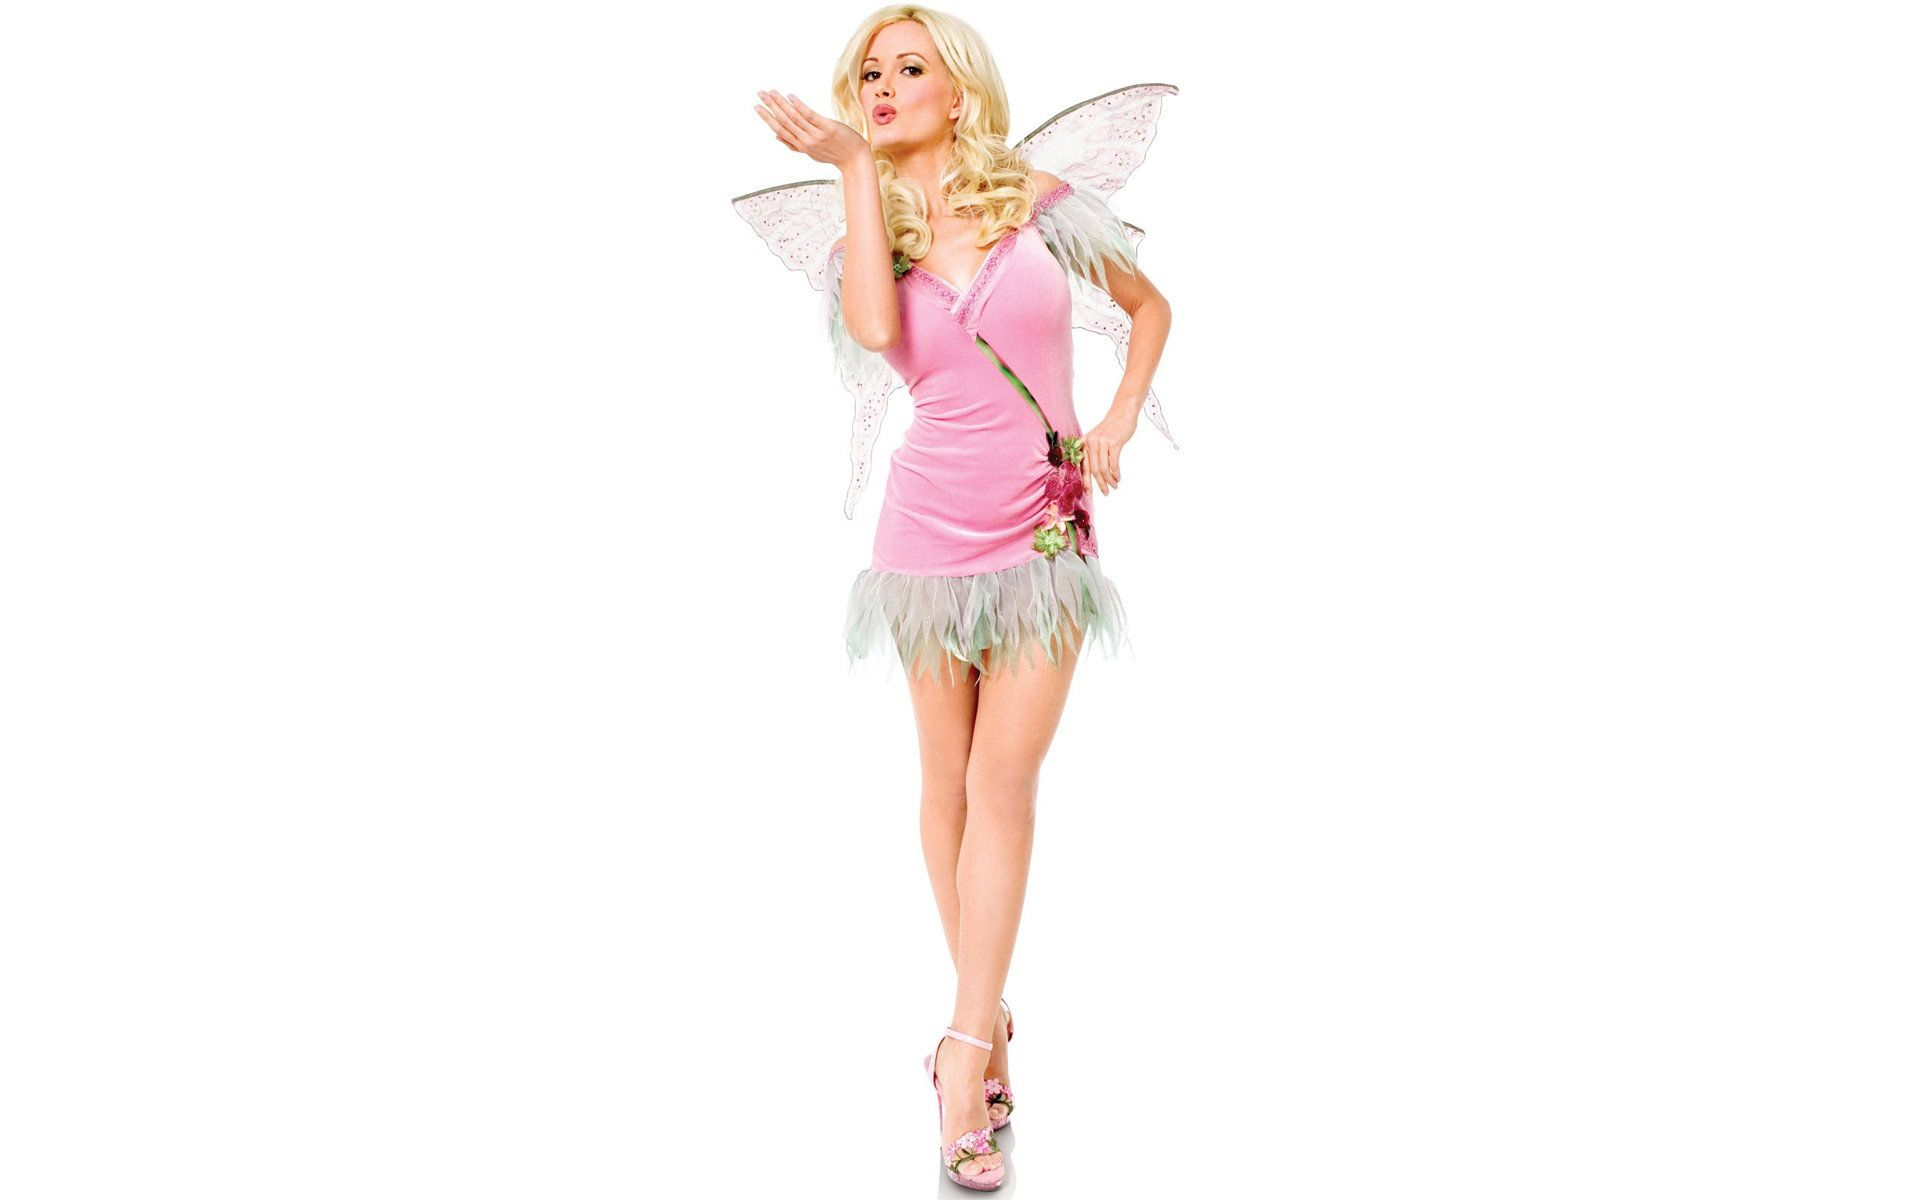 Holly Madison Wallpapers 4 Hd Desktop And Mobile Wallpapers Date Of Birth December 23 1979 Tags For Holly Madison Tv Personality Model